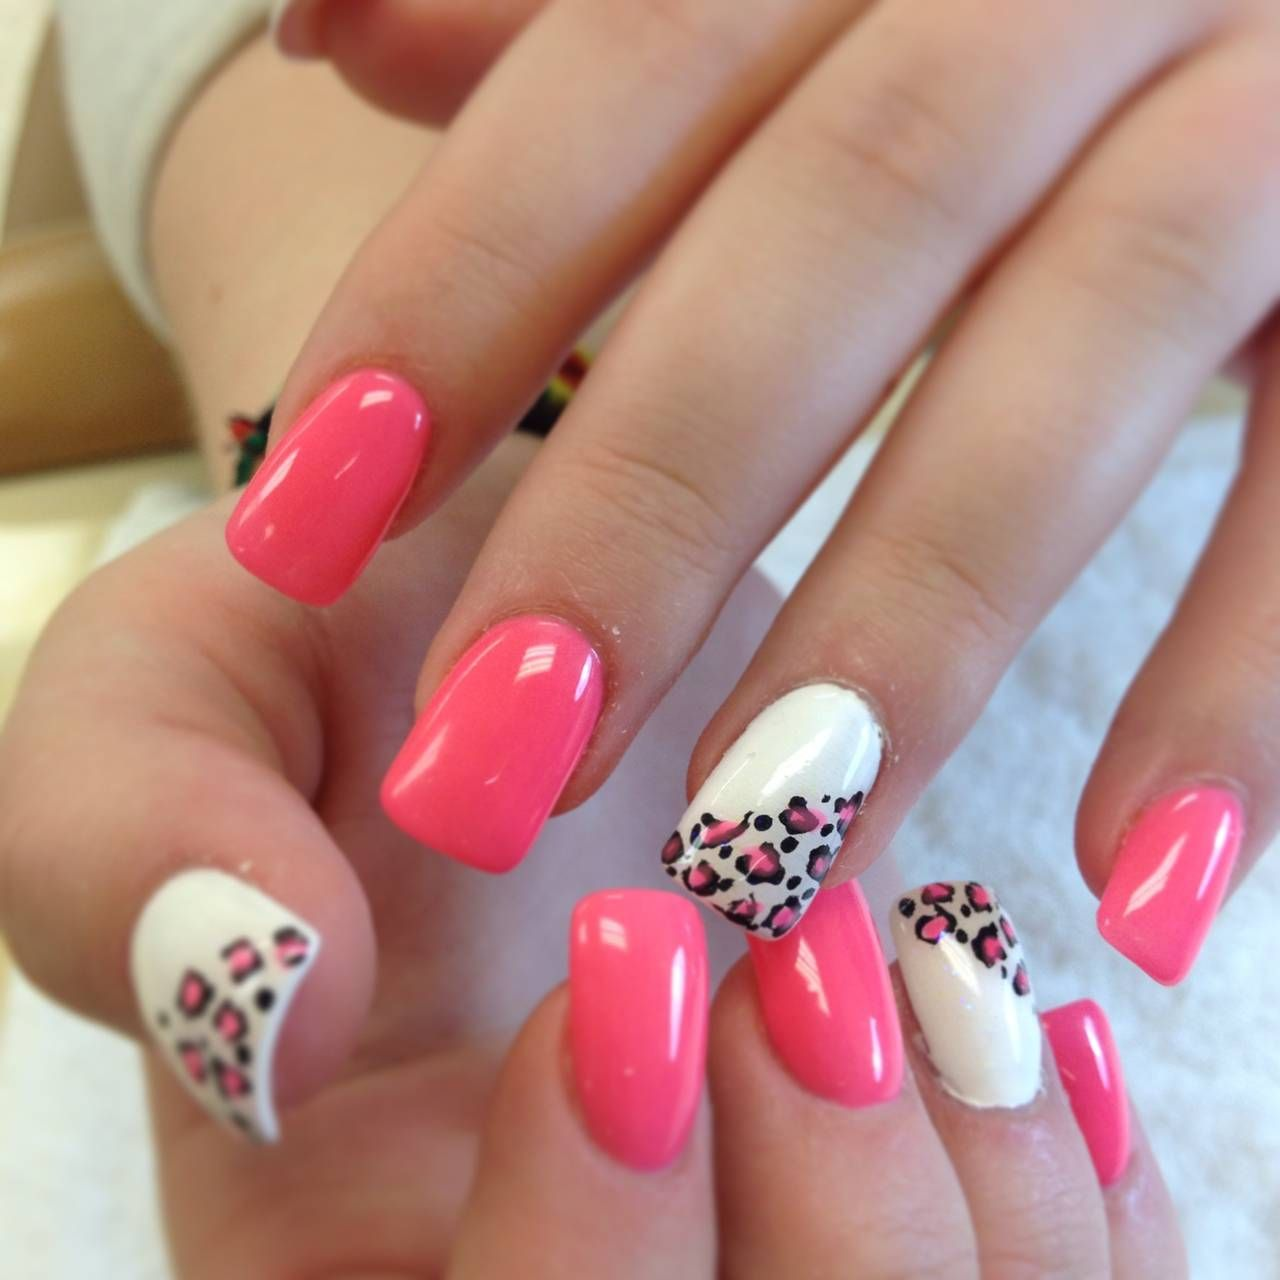 Pink zebra nails nails pinterest - Gallery Of Finger Nail Designs Leopard Pink White And Leopard